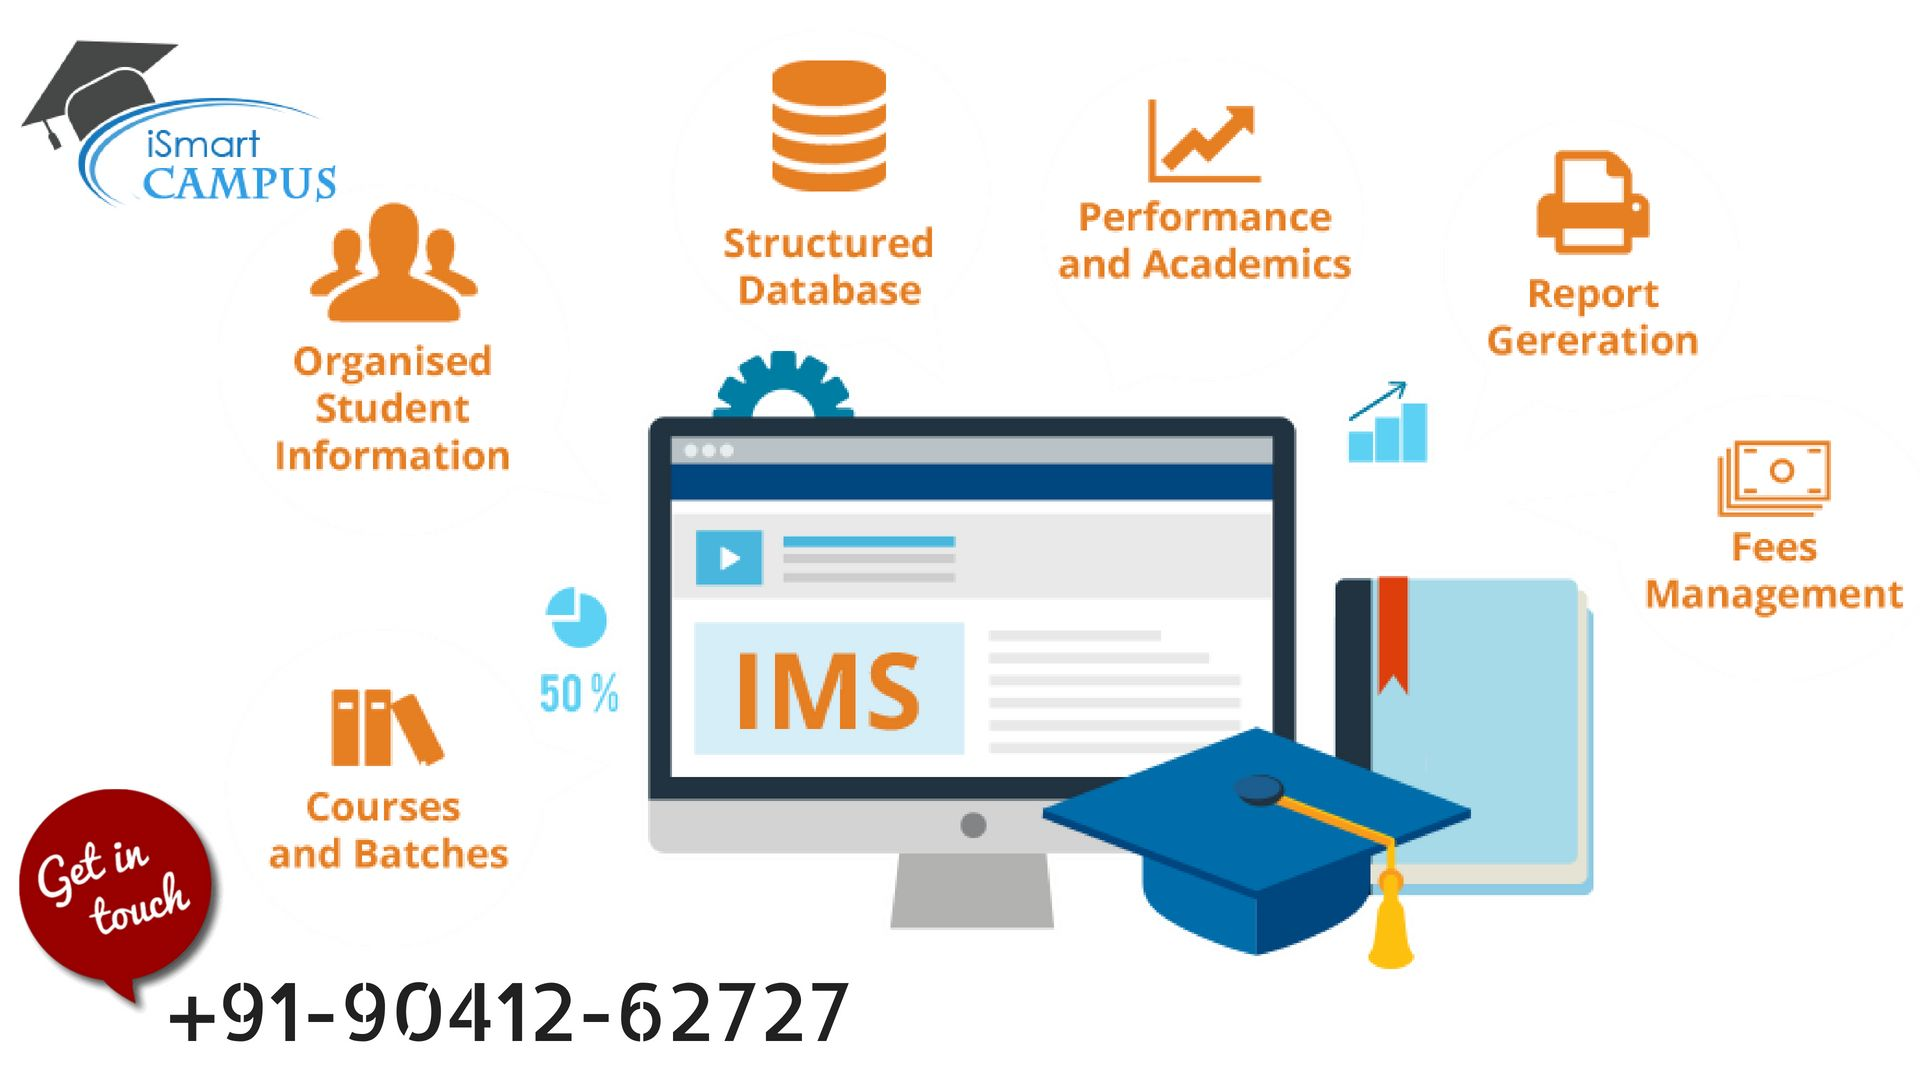 Institutemanagementsystem Is Designed To Automate The Management Process Of An Institute From Stud College Management Student Information Student Organization